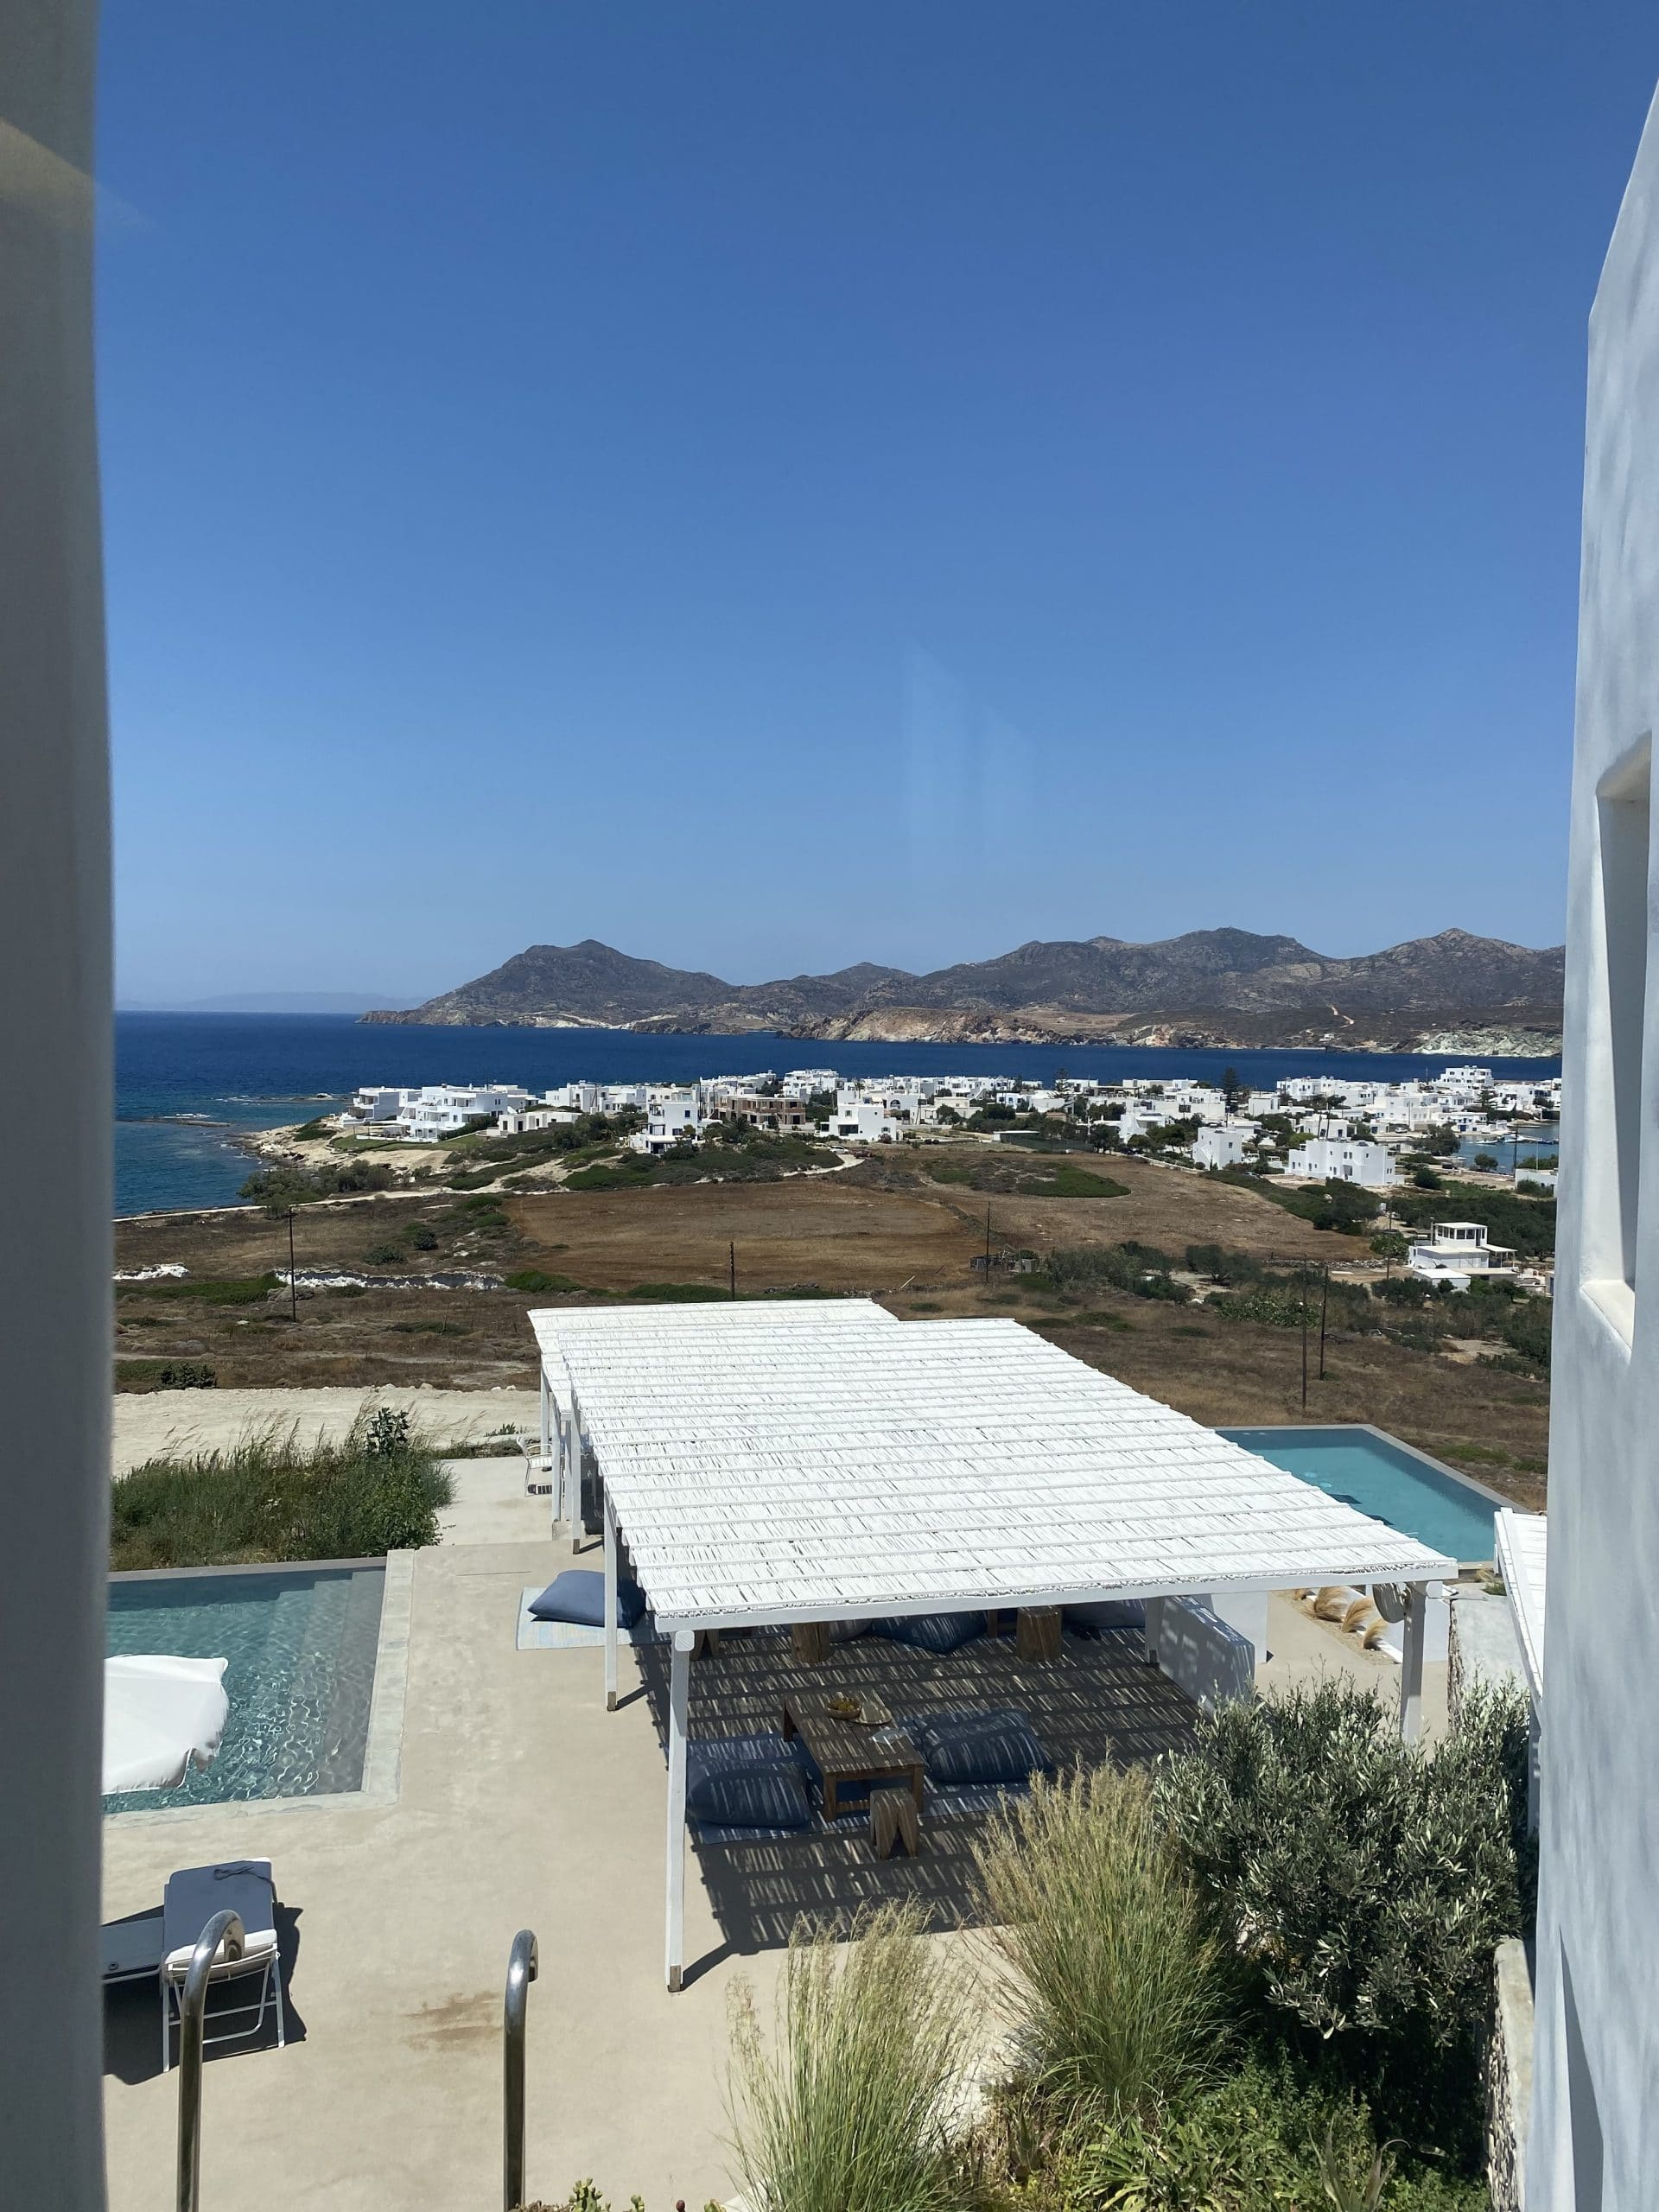 the view from our room in milos!